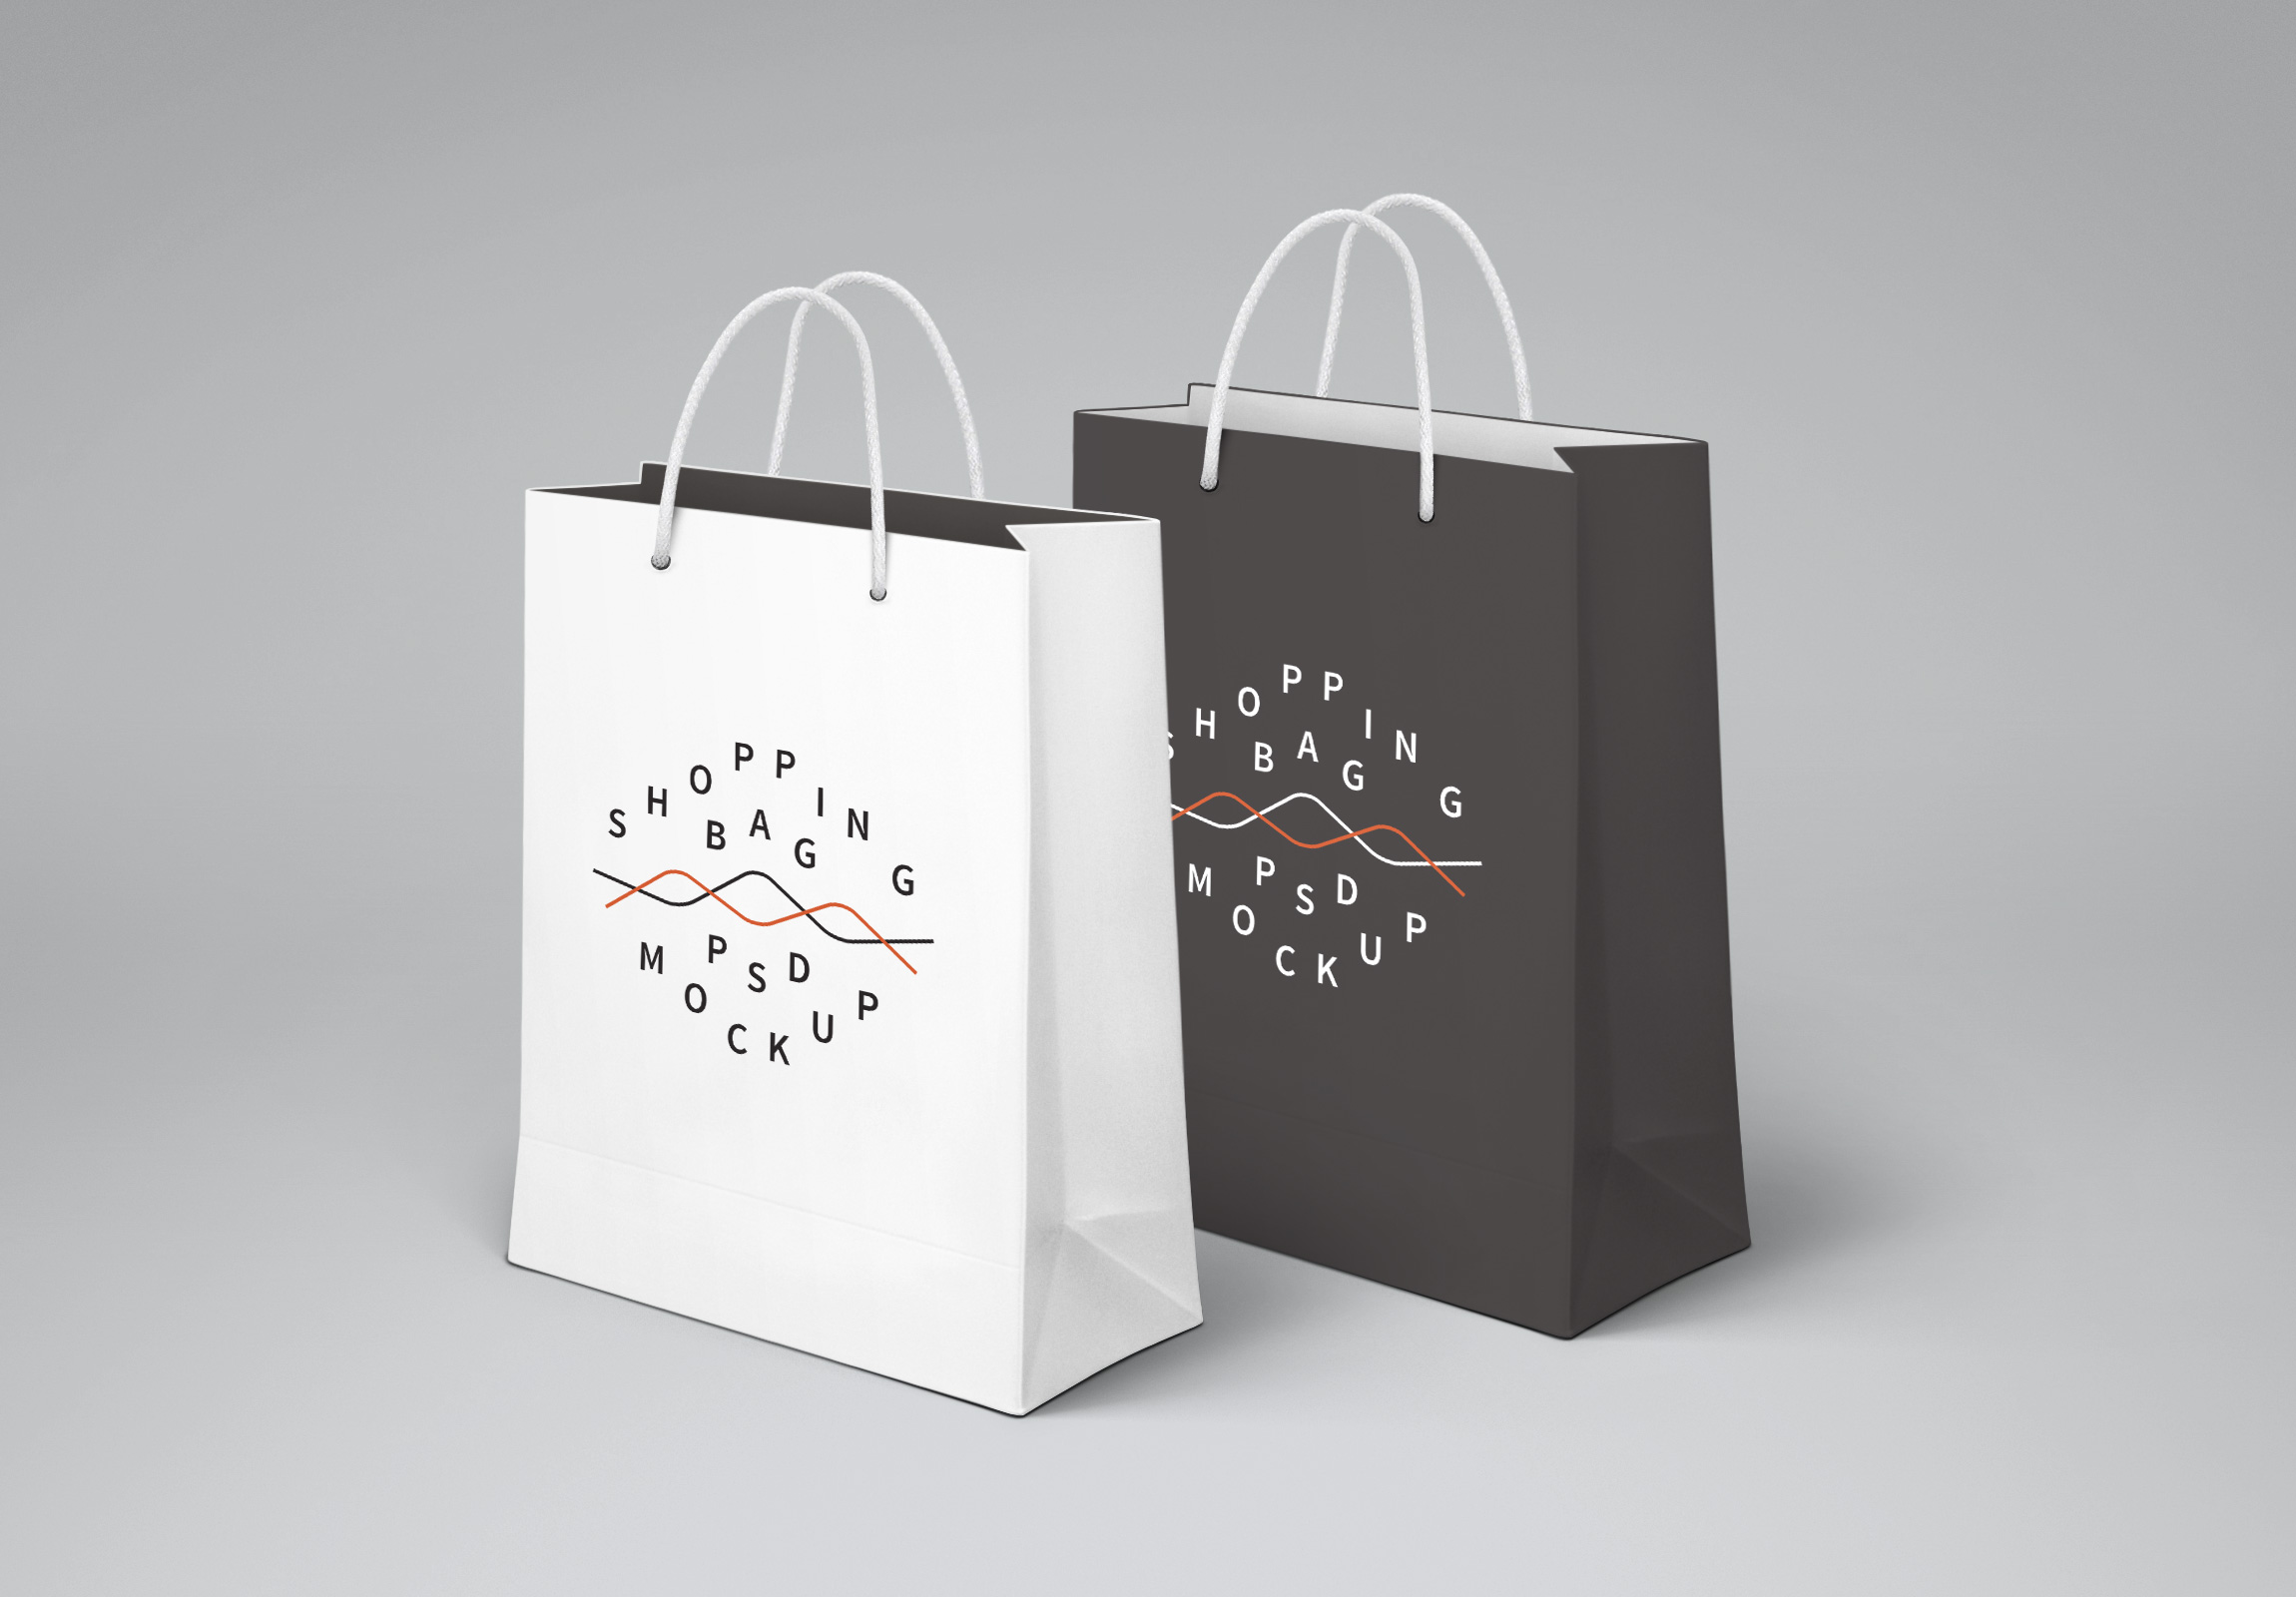 14 PSD Mock Up Bags Images